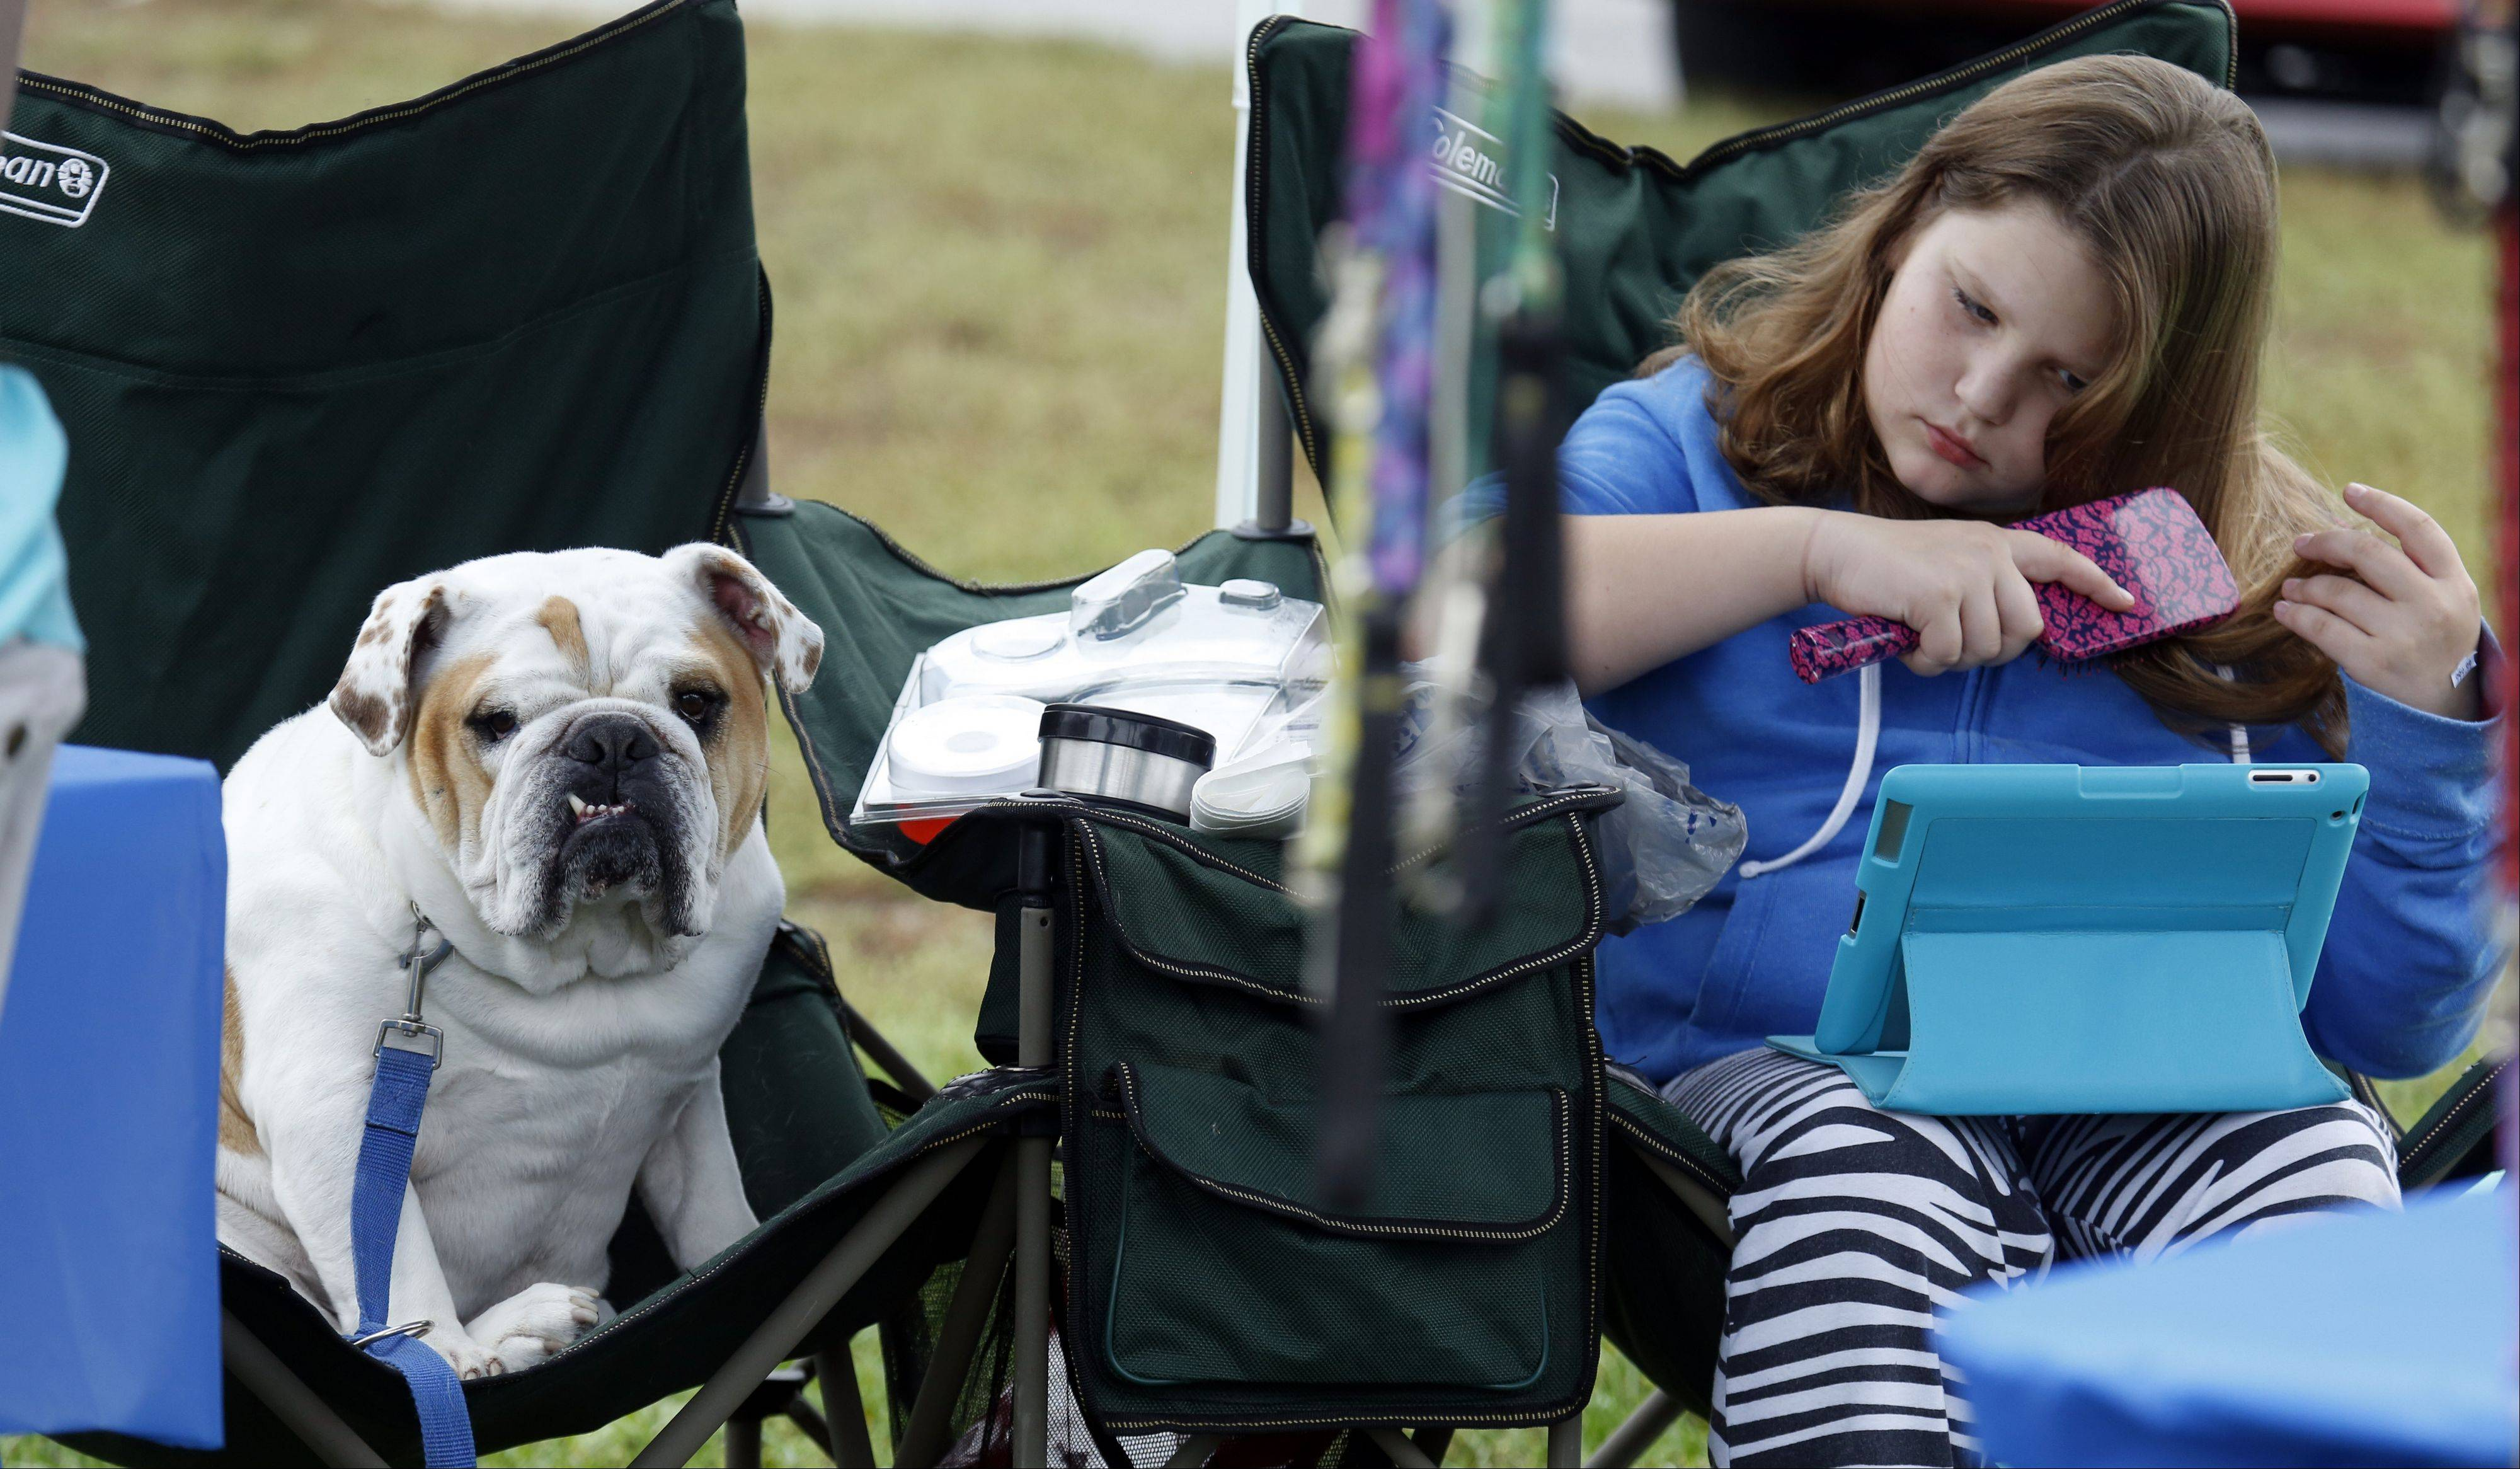 Lilly Tapper and her dog Bob, an English bulldog, wait for customers at the Doggie Styles Pet Grooming stand on Saturday during the annual Dog-tober Fest in Huntley.